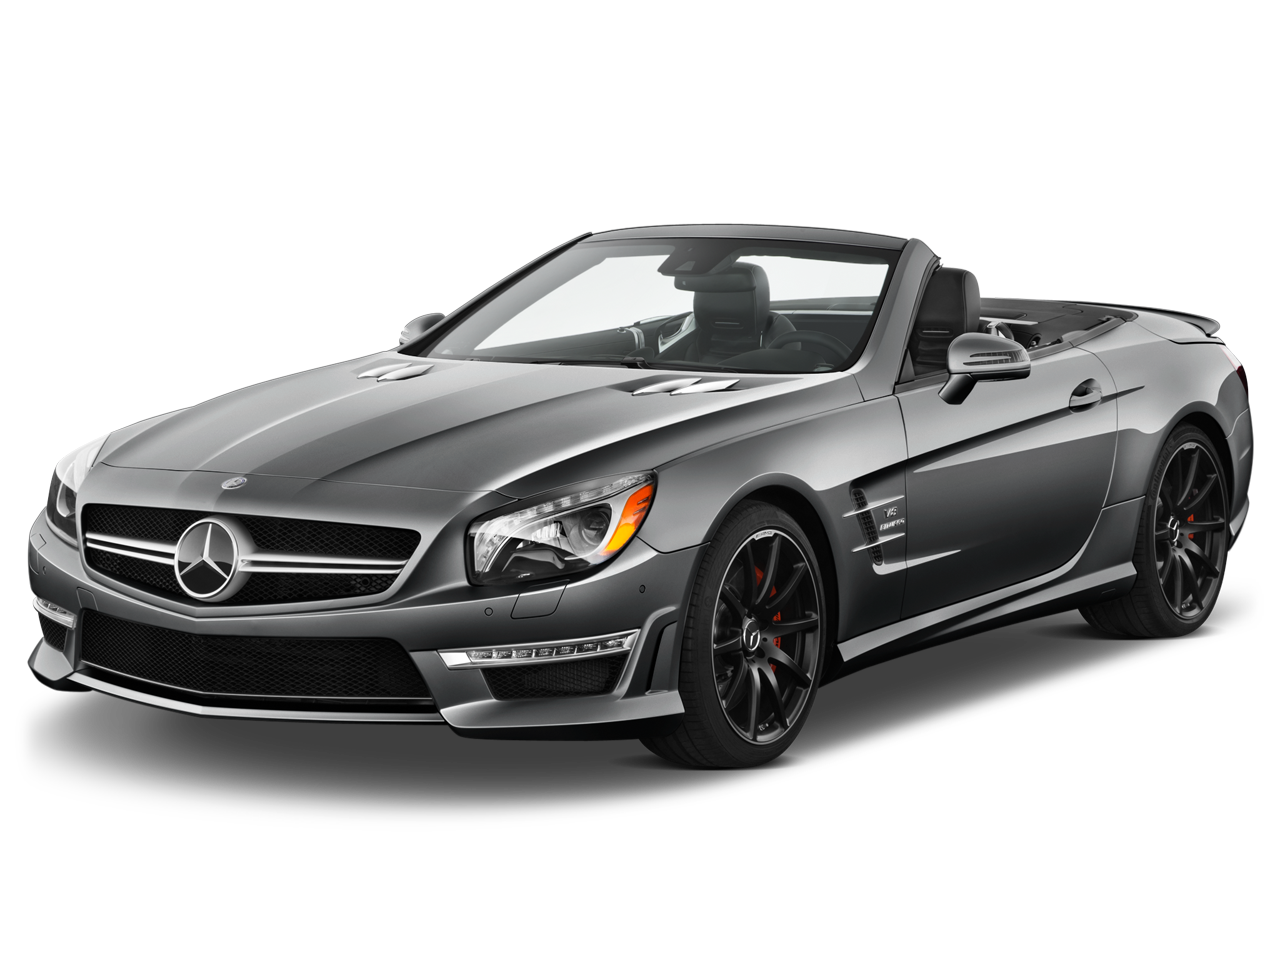 Fancy car clipart transparent. Mercedes png images pictures